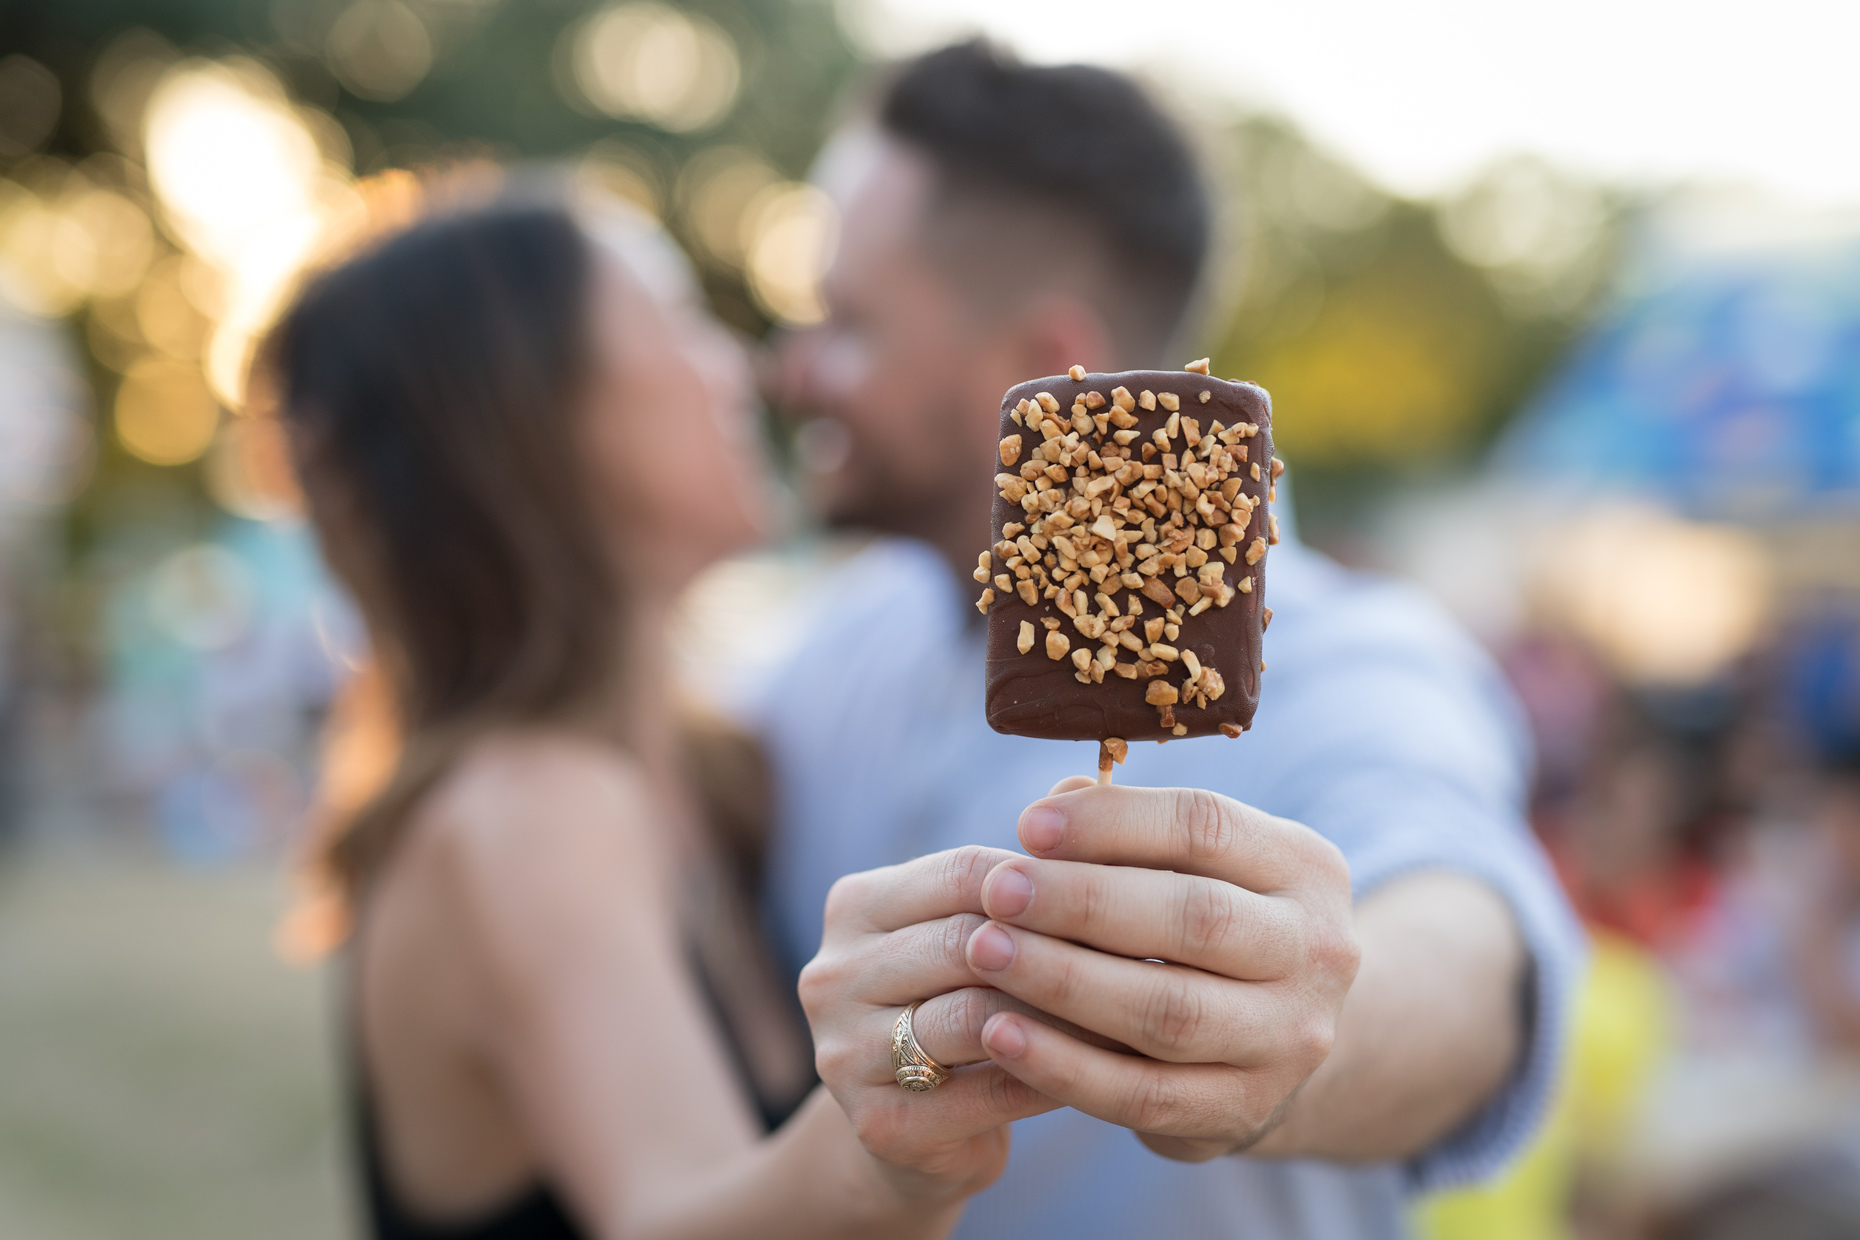 Ice cream and a kiss at The State Fair of Texas. Photography by Kevin Brown